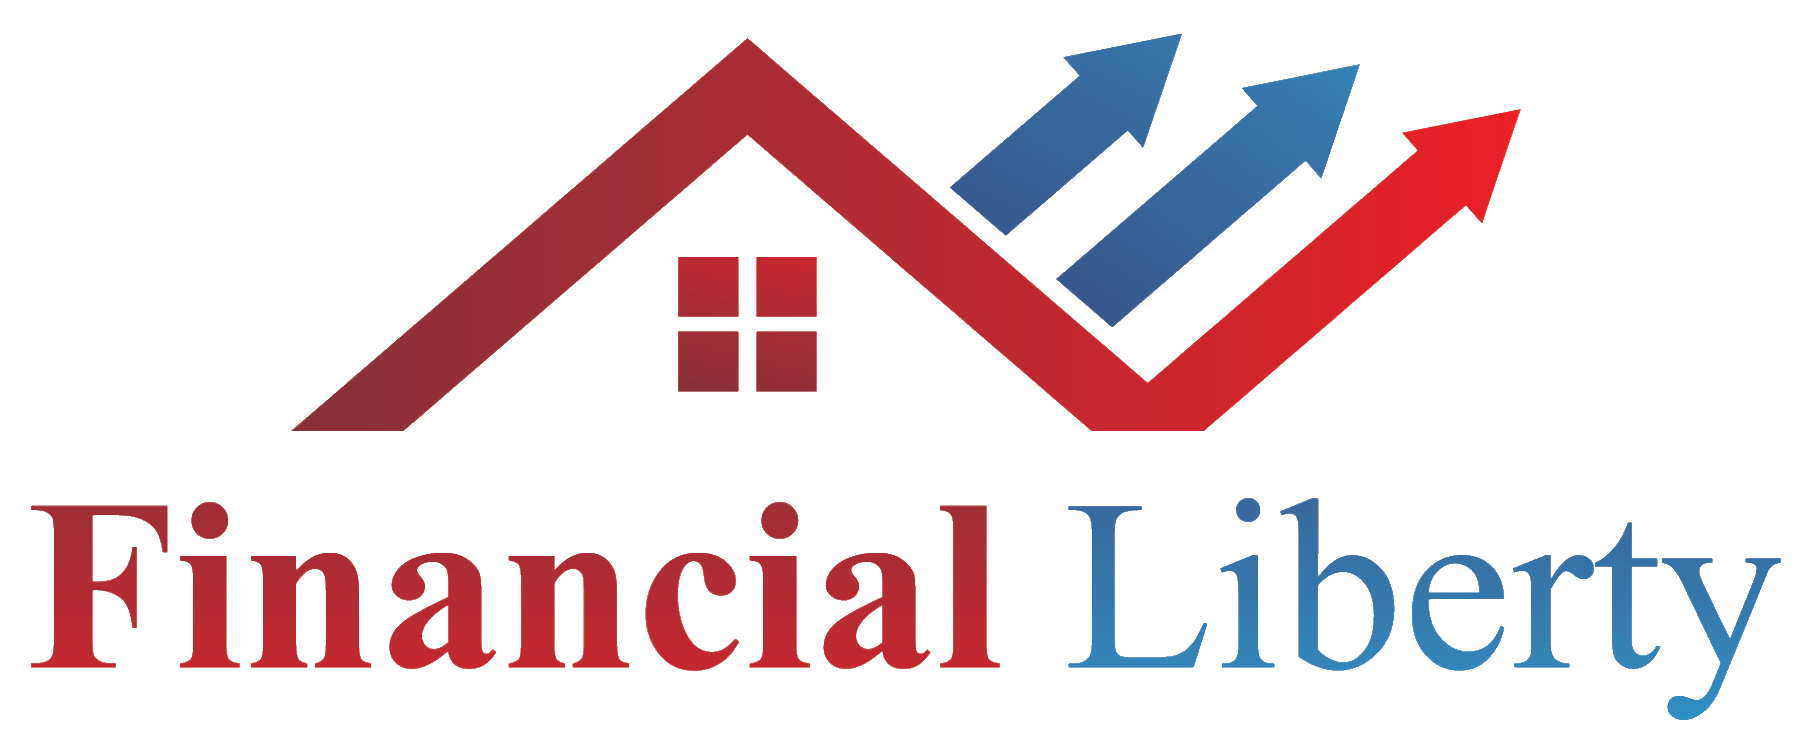 Financial Liberty Realty